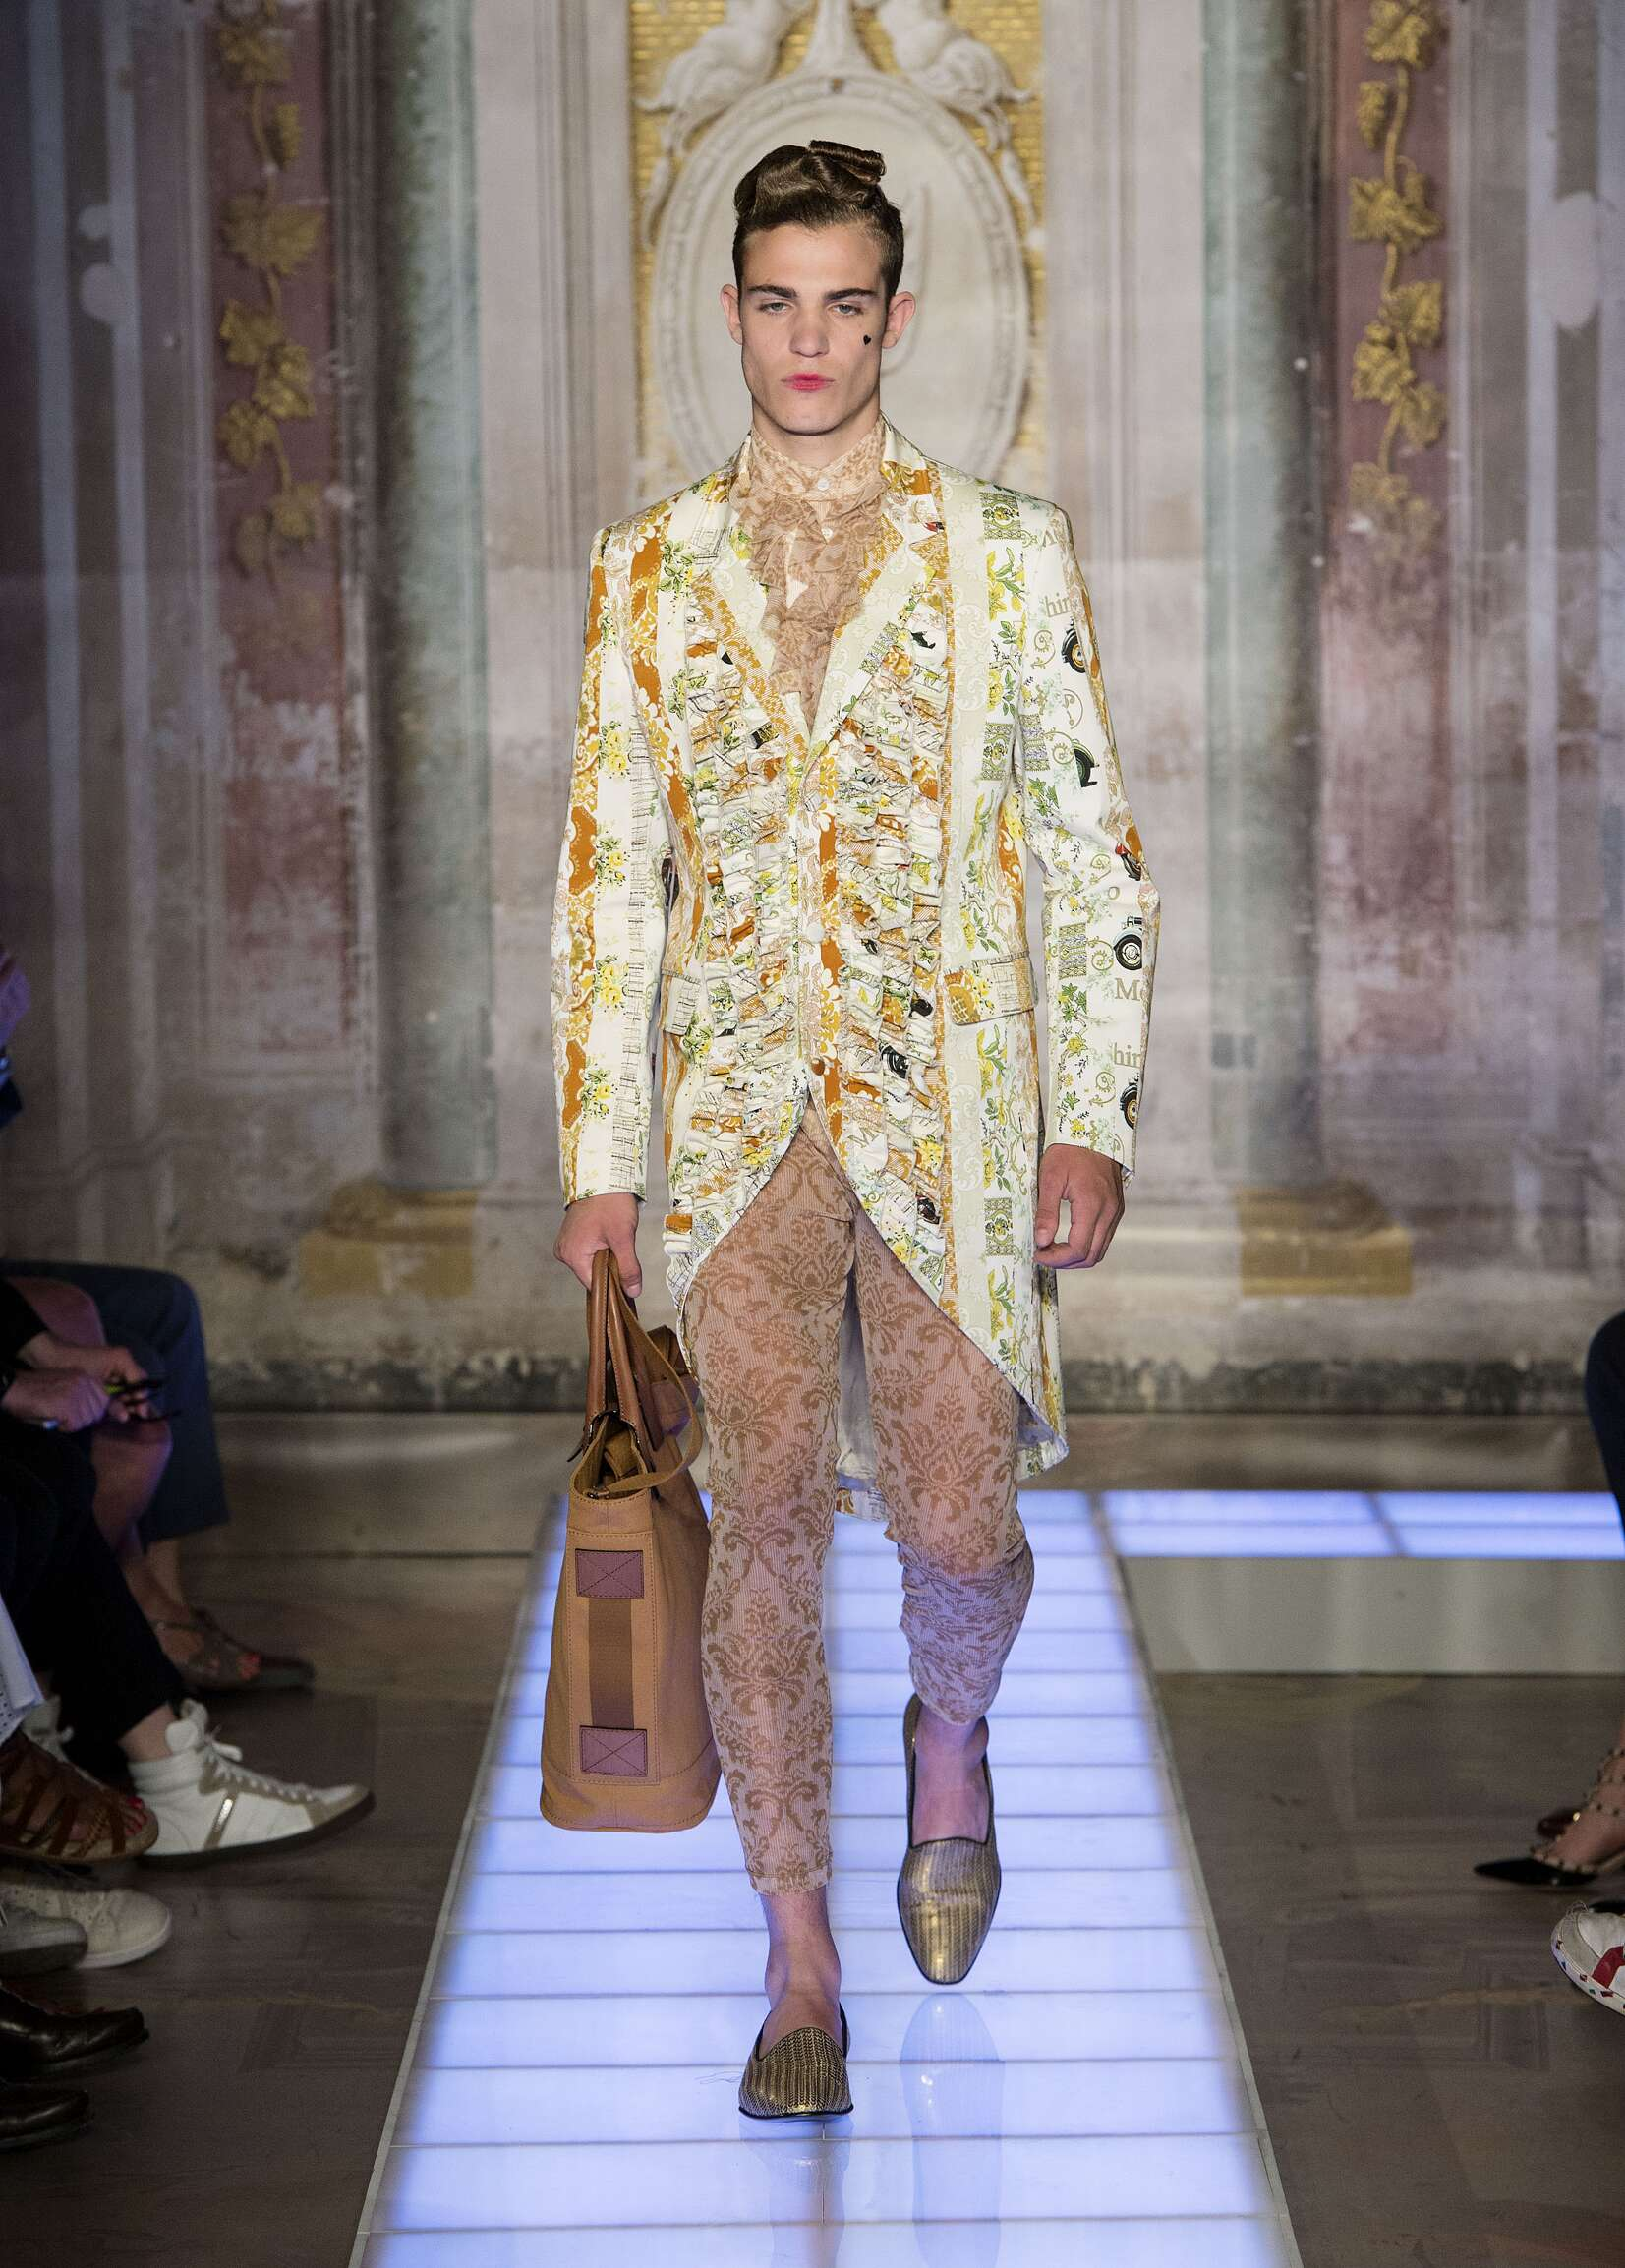 Moschino Collection Man Pitti Immagine Florence